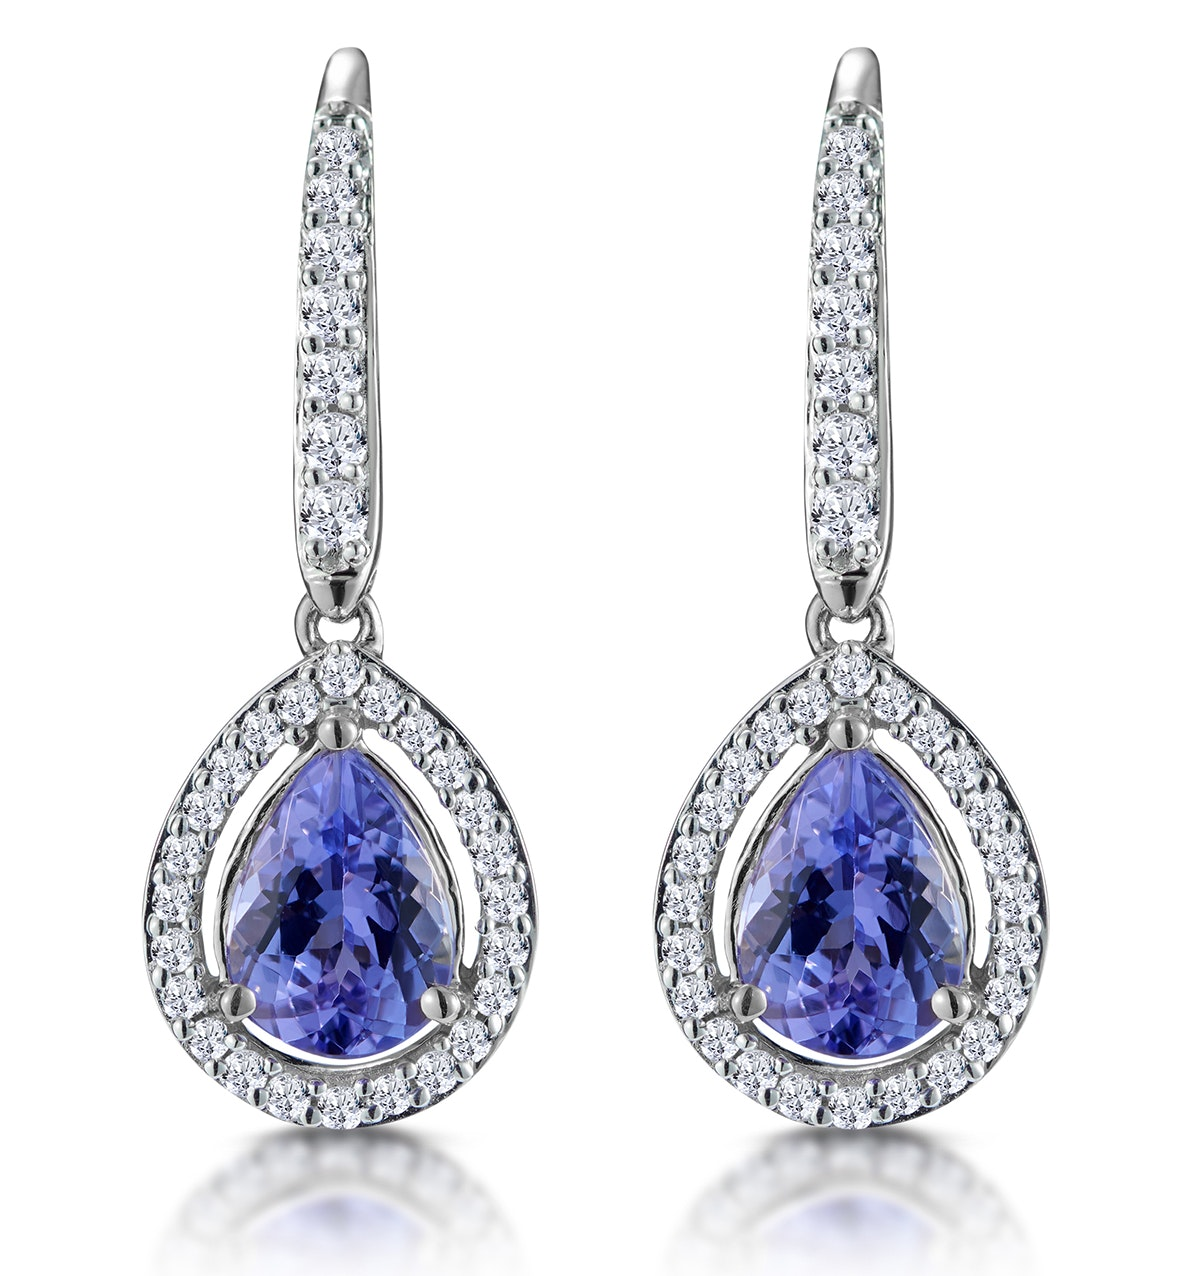 1.4ct Tanzanite and Diamond Halo Earrings 18KW Gold Asteria Collection